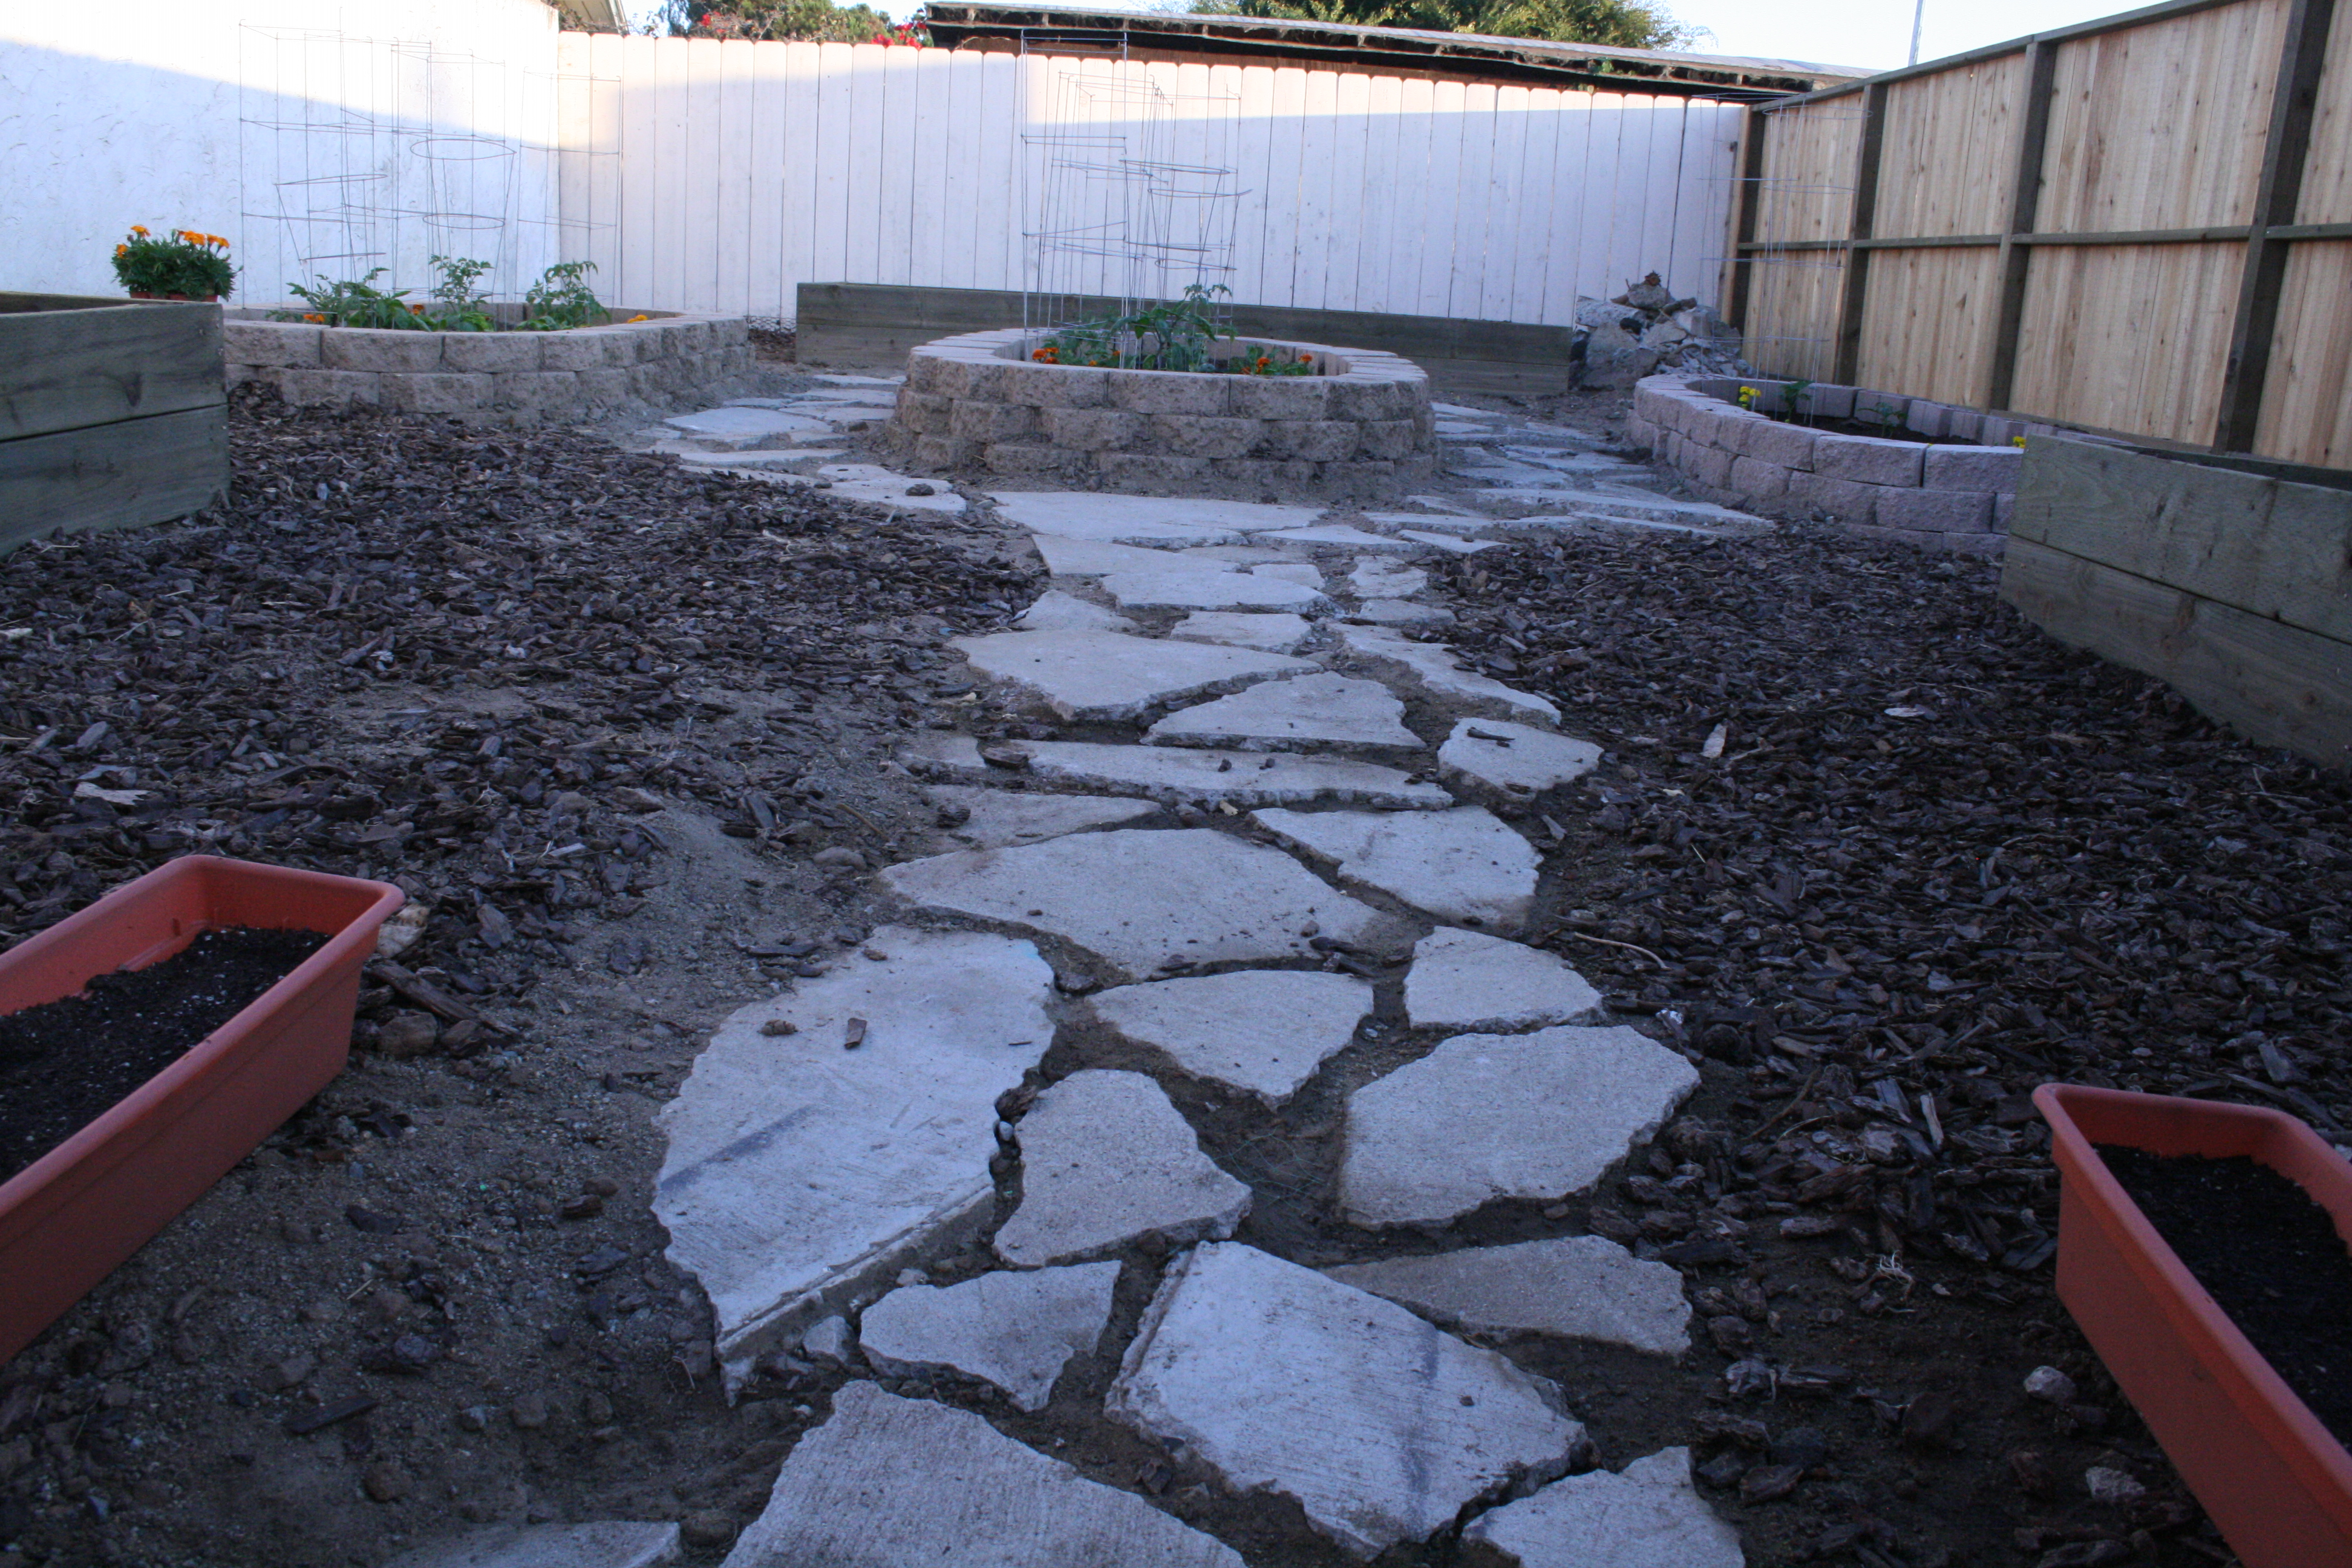 After tearing down an old decripit shed, and reusing some broken concrete to make a path around gardening beds, this piece of our backyard will soon feed us. Garden by Kerri. Photo by Christopher.